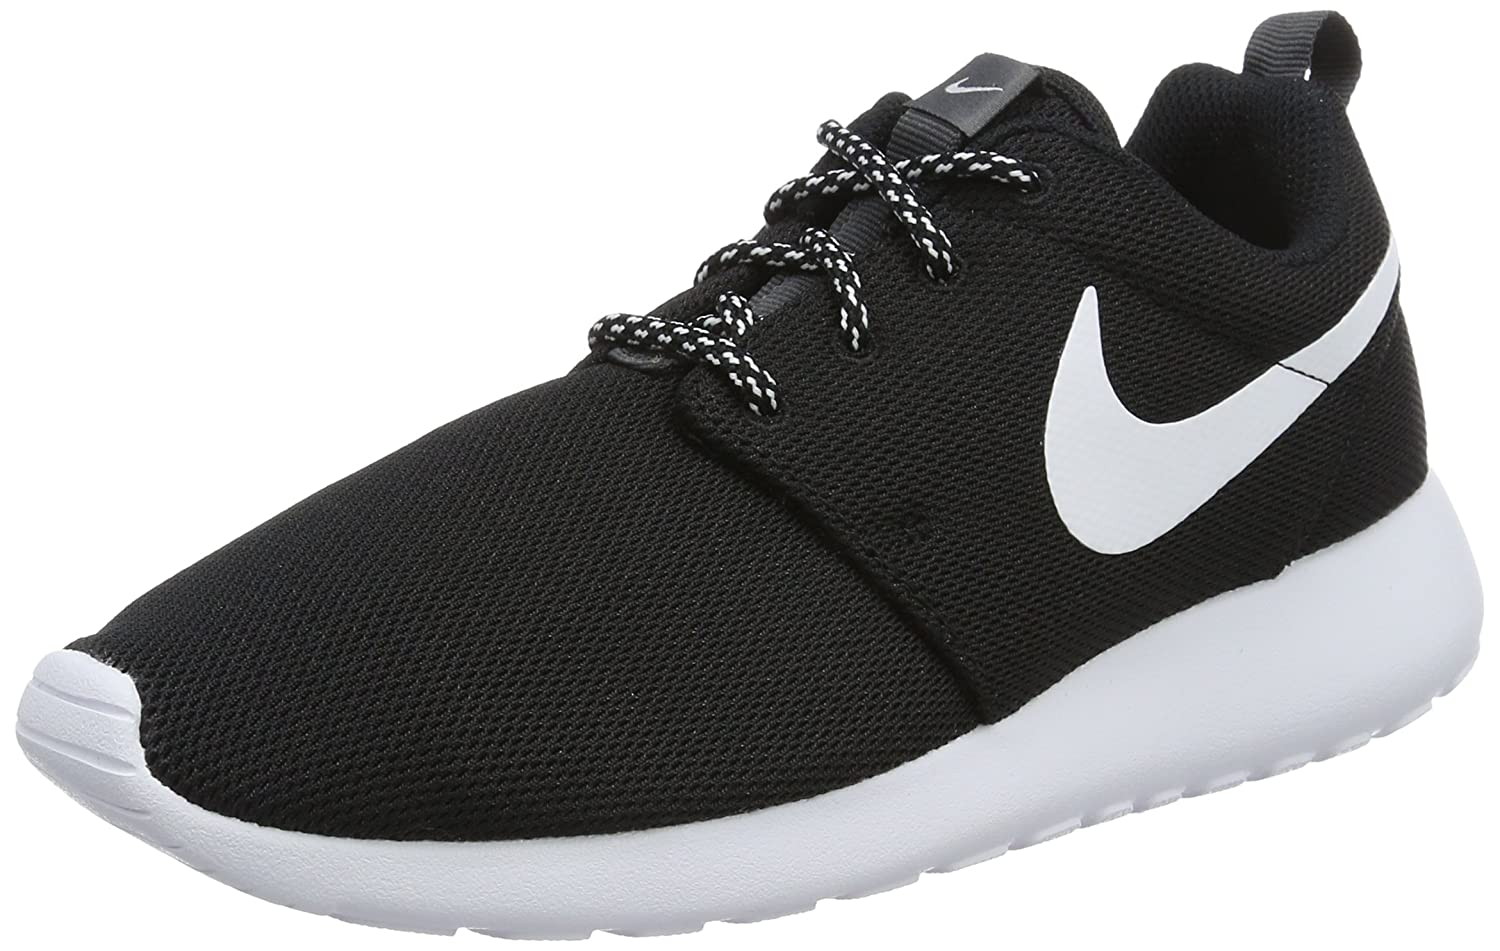 quality design 11e66 14f1e Nike Womens Roshe One Trainers